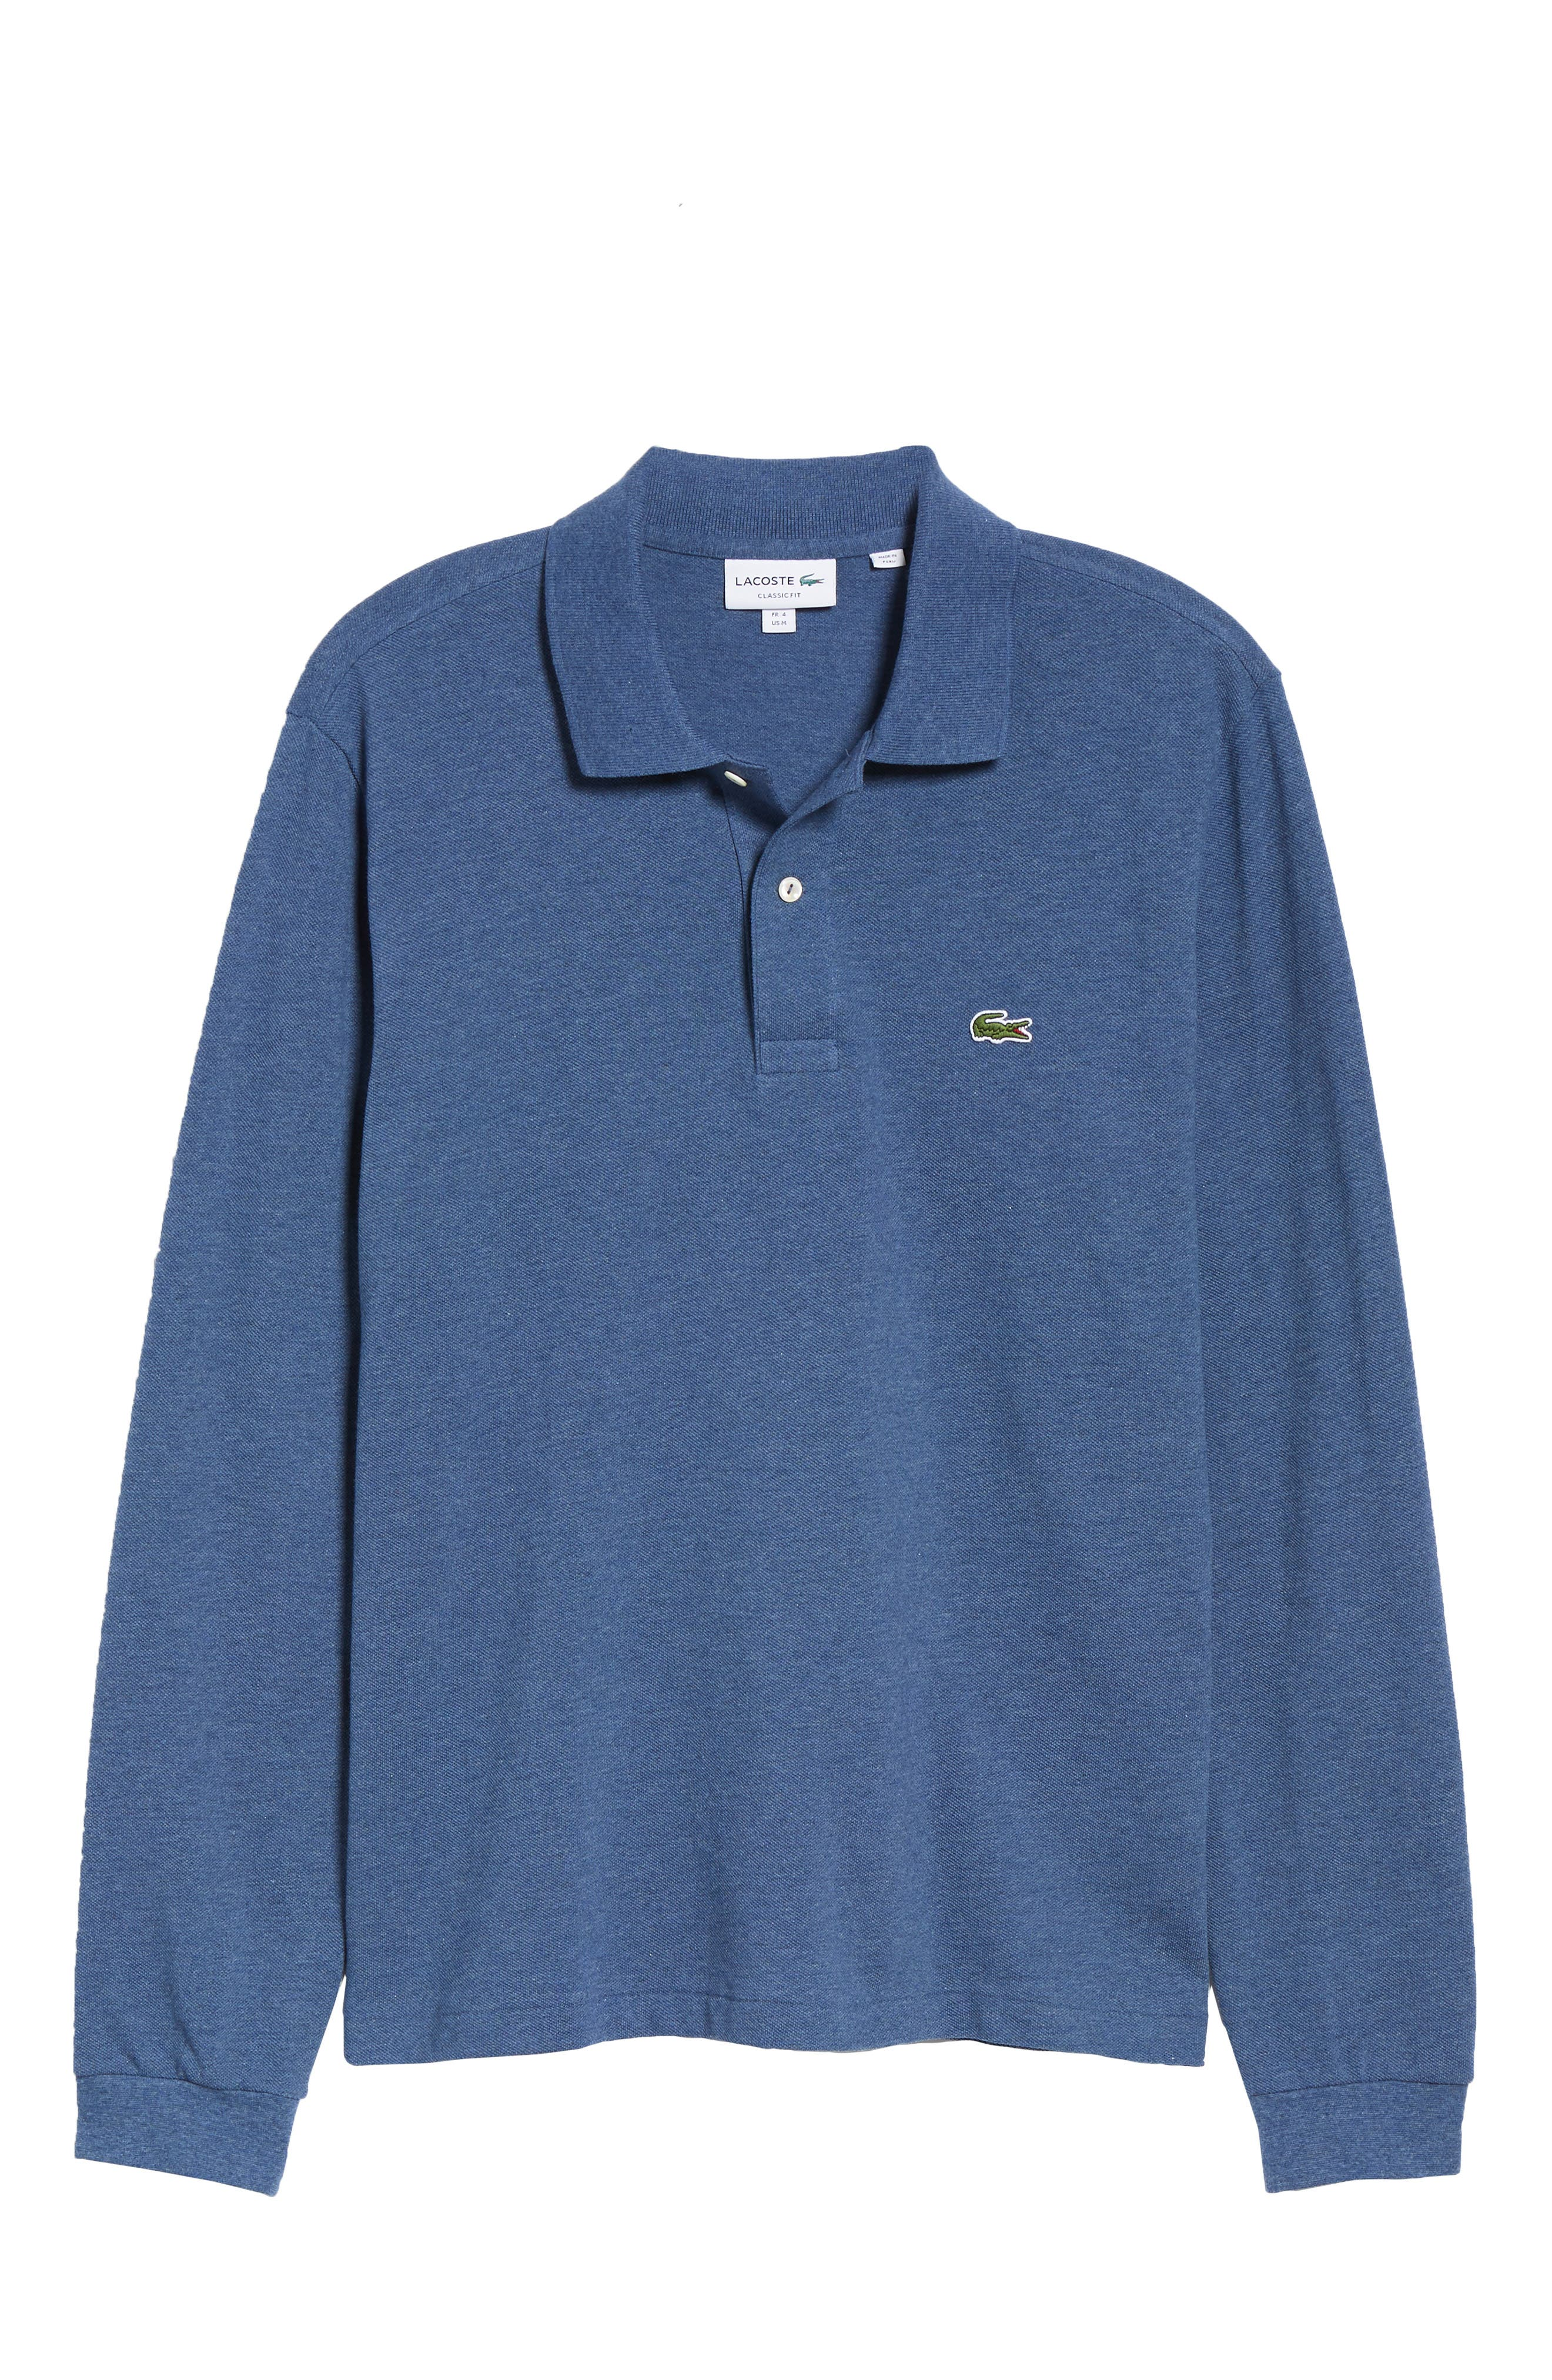 LACOSTE, Long Sleeve Piqué Polo, Alternate thumbnail 6, color, CRUISE CHINE